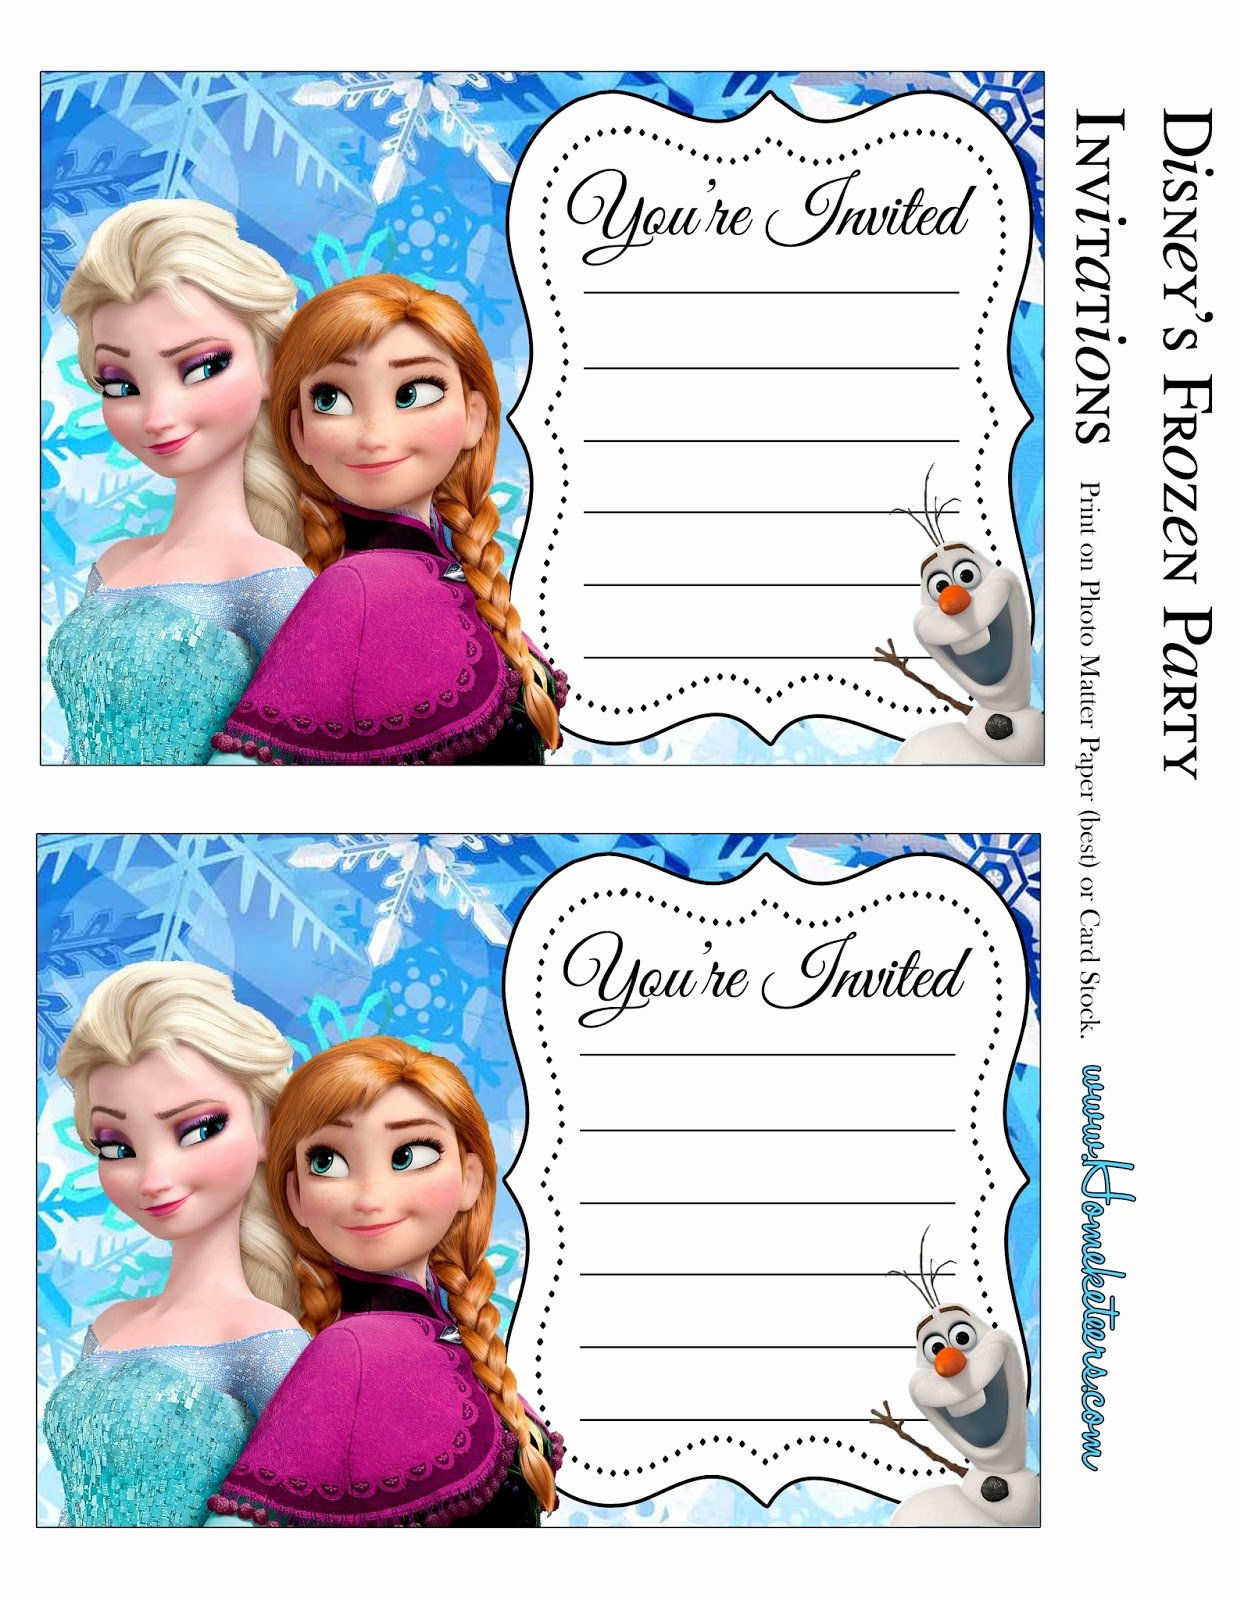 Frozen Birthday Invitations Free Inspirational Frozen Party Free Printable Invitations